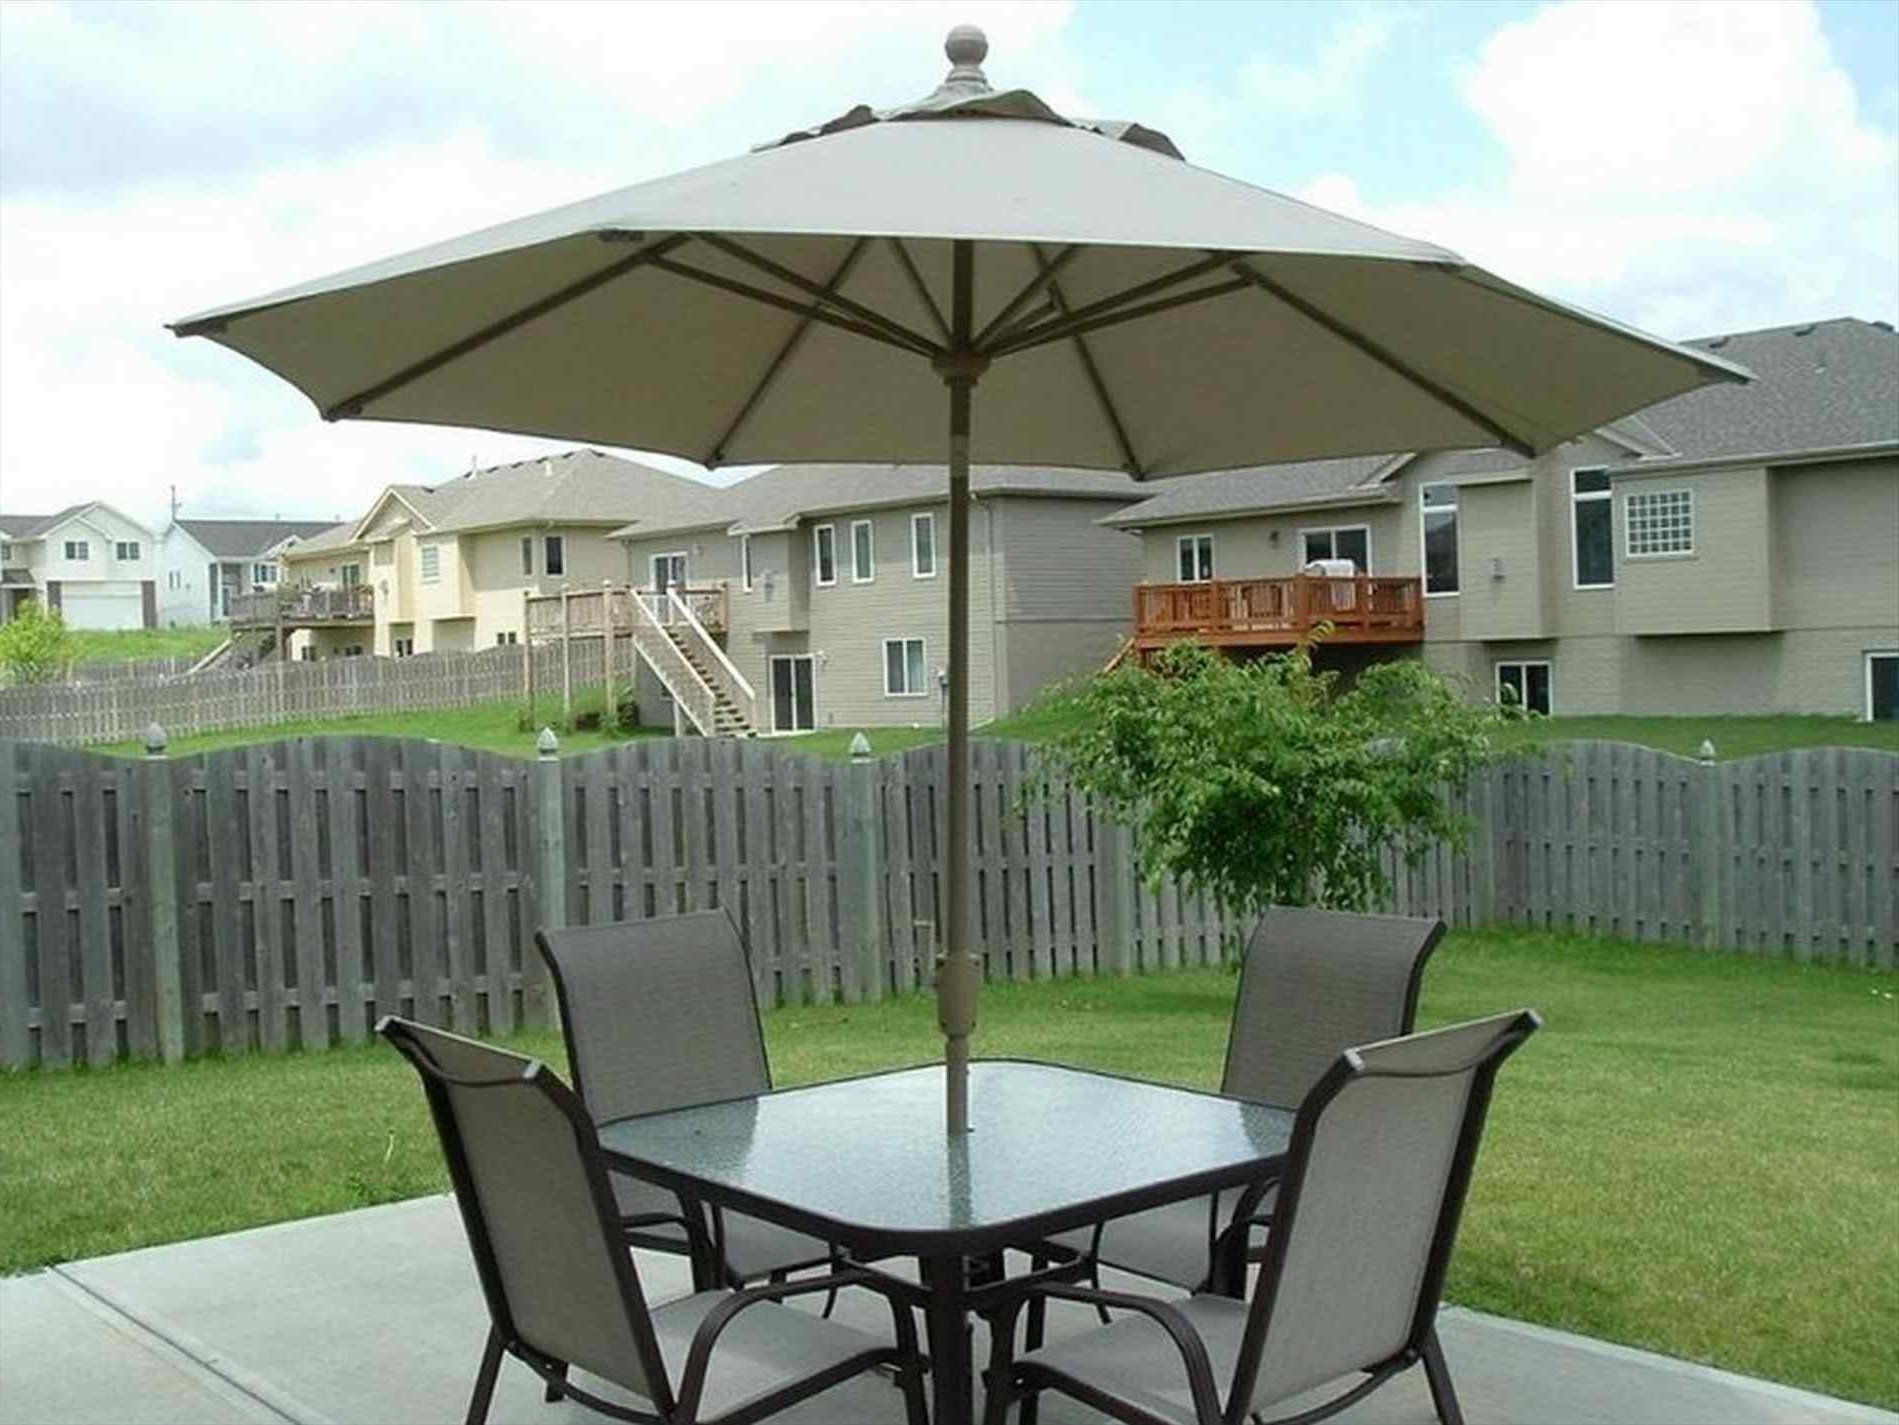 Most Recently Released Patio Tables With Umbrellas With The Images Collection Of Furniture With Umbrella Garden Umbrella (View 5 of 20)